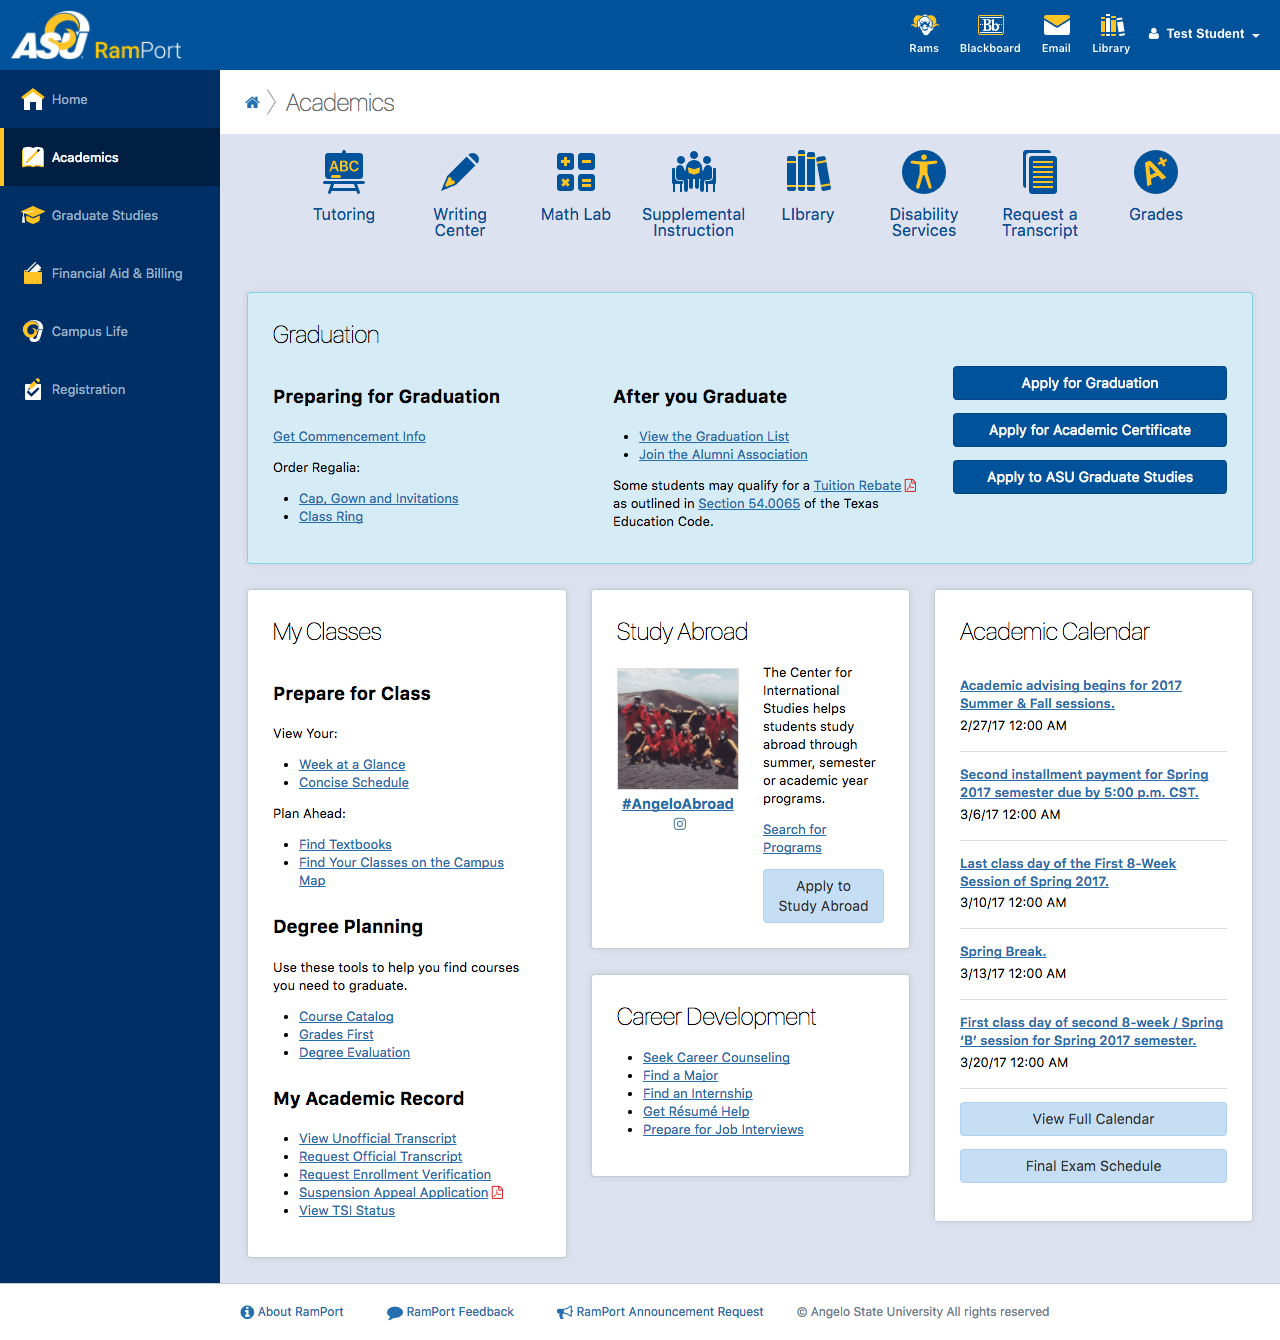 Screenshot of the Academics page in RamPort